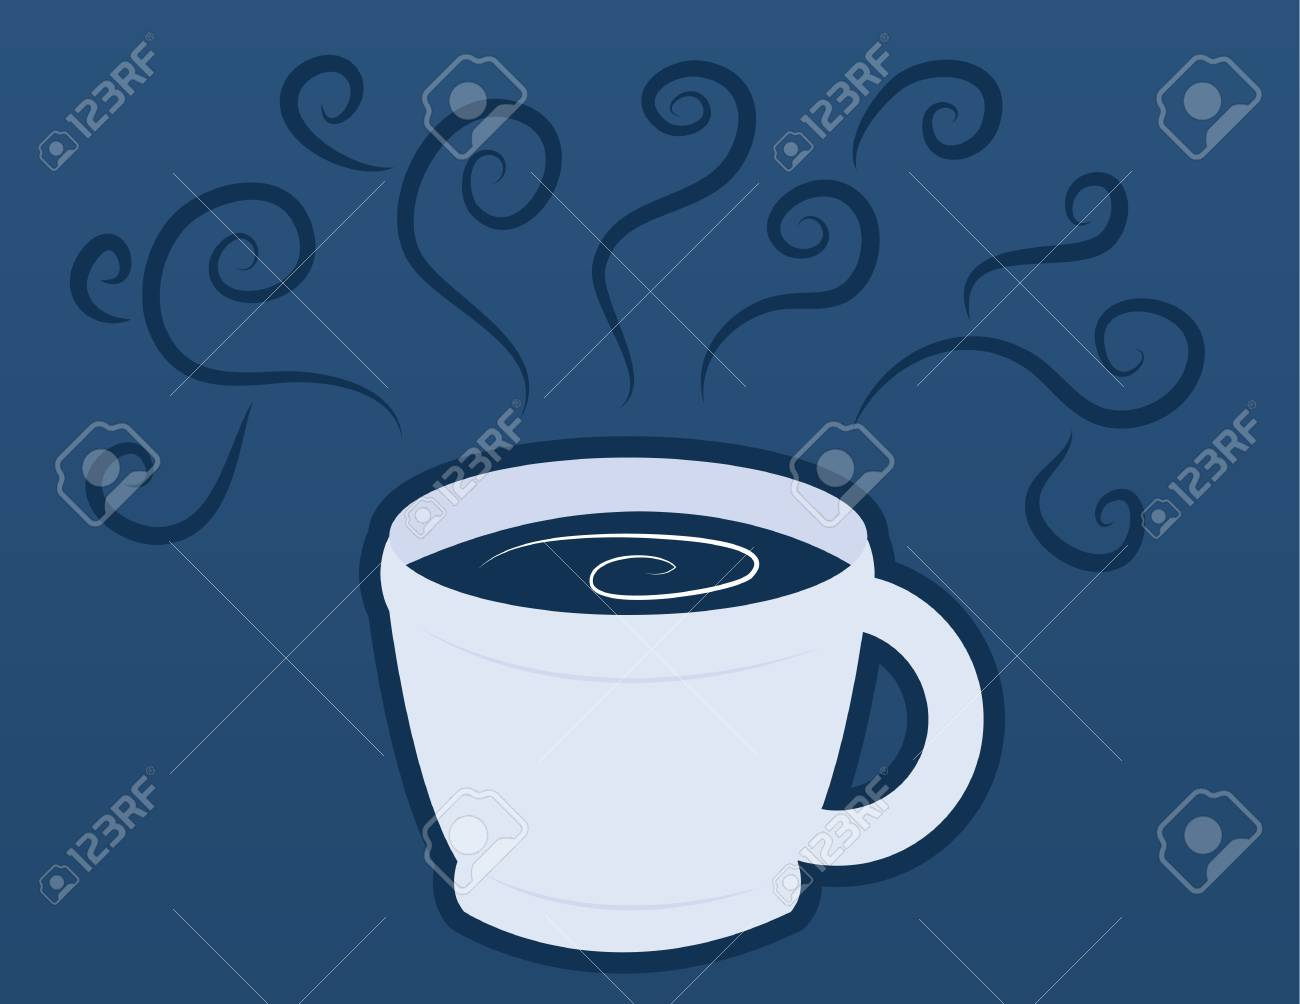 Coffee or chocolate milk mug with blue steam Stock Vector - 11664275